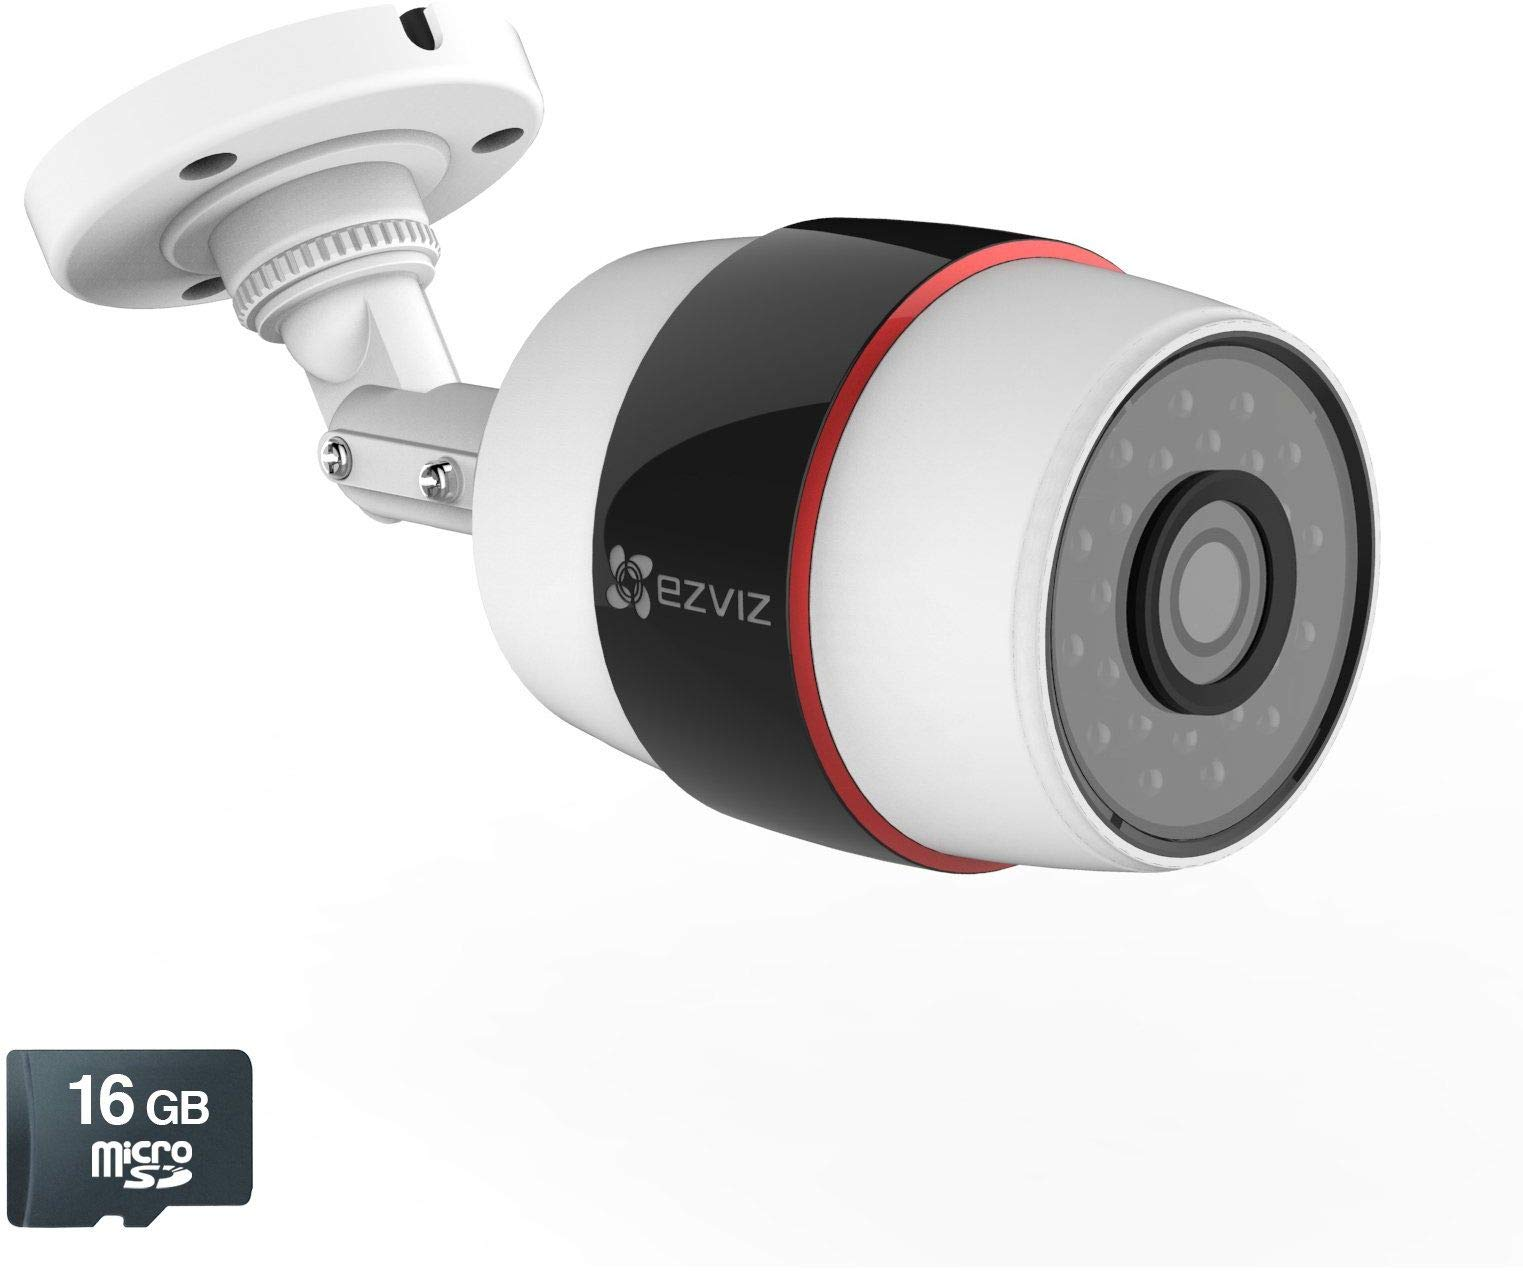 EZVIZ Husky Outdoor HD 1080p PoE & Wi-Fi Wireless Video Security Bullet Camera, Works with Alexa, 100 ft. Night Vision, Weatherproof, 16GB Micro SD Included (WiFi Connectivity - 2.4Ghz Only) by EZVIZ